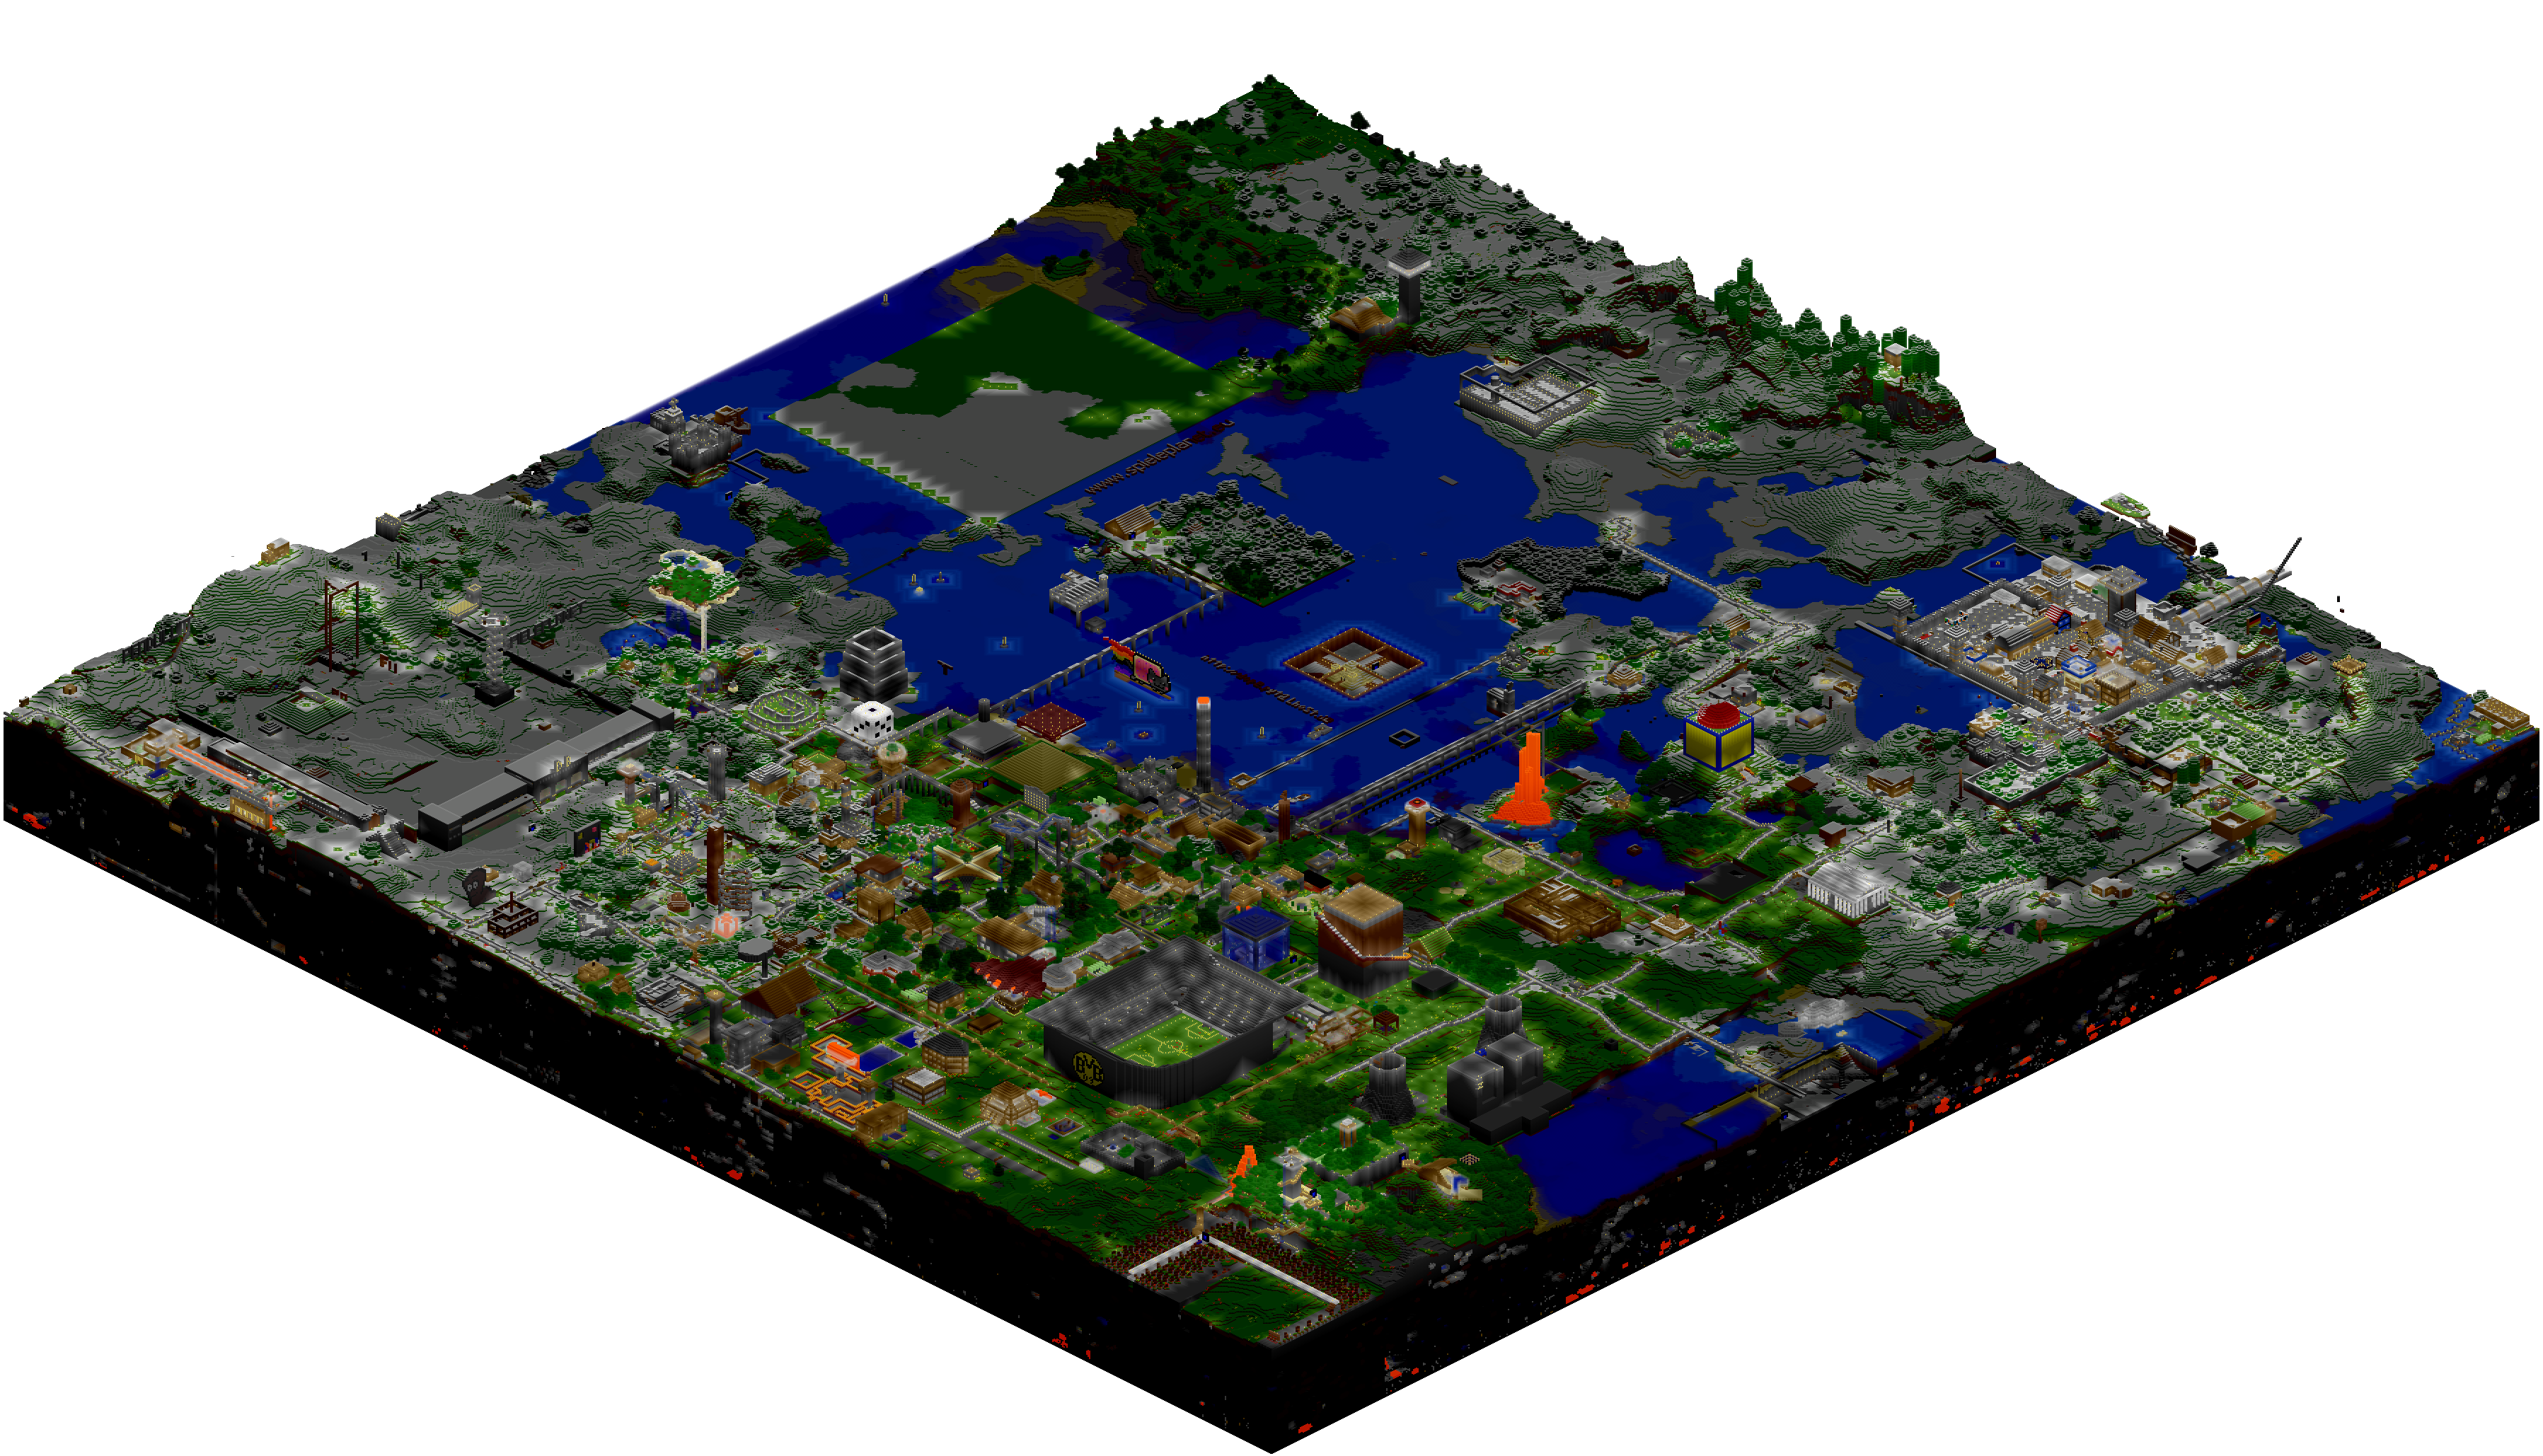 Mcmap isometric renders sspsmp minecraft 131 support minecraft forums publicscrutiny Image collections